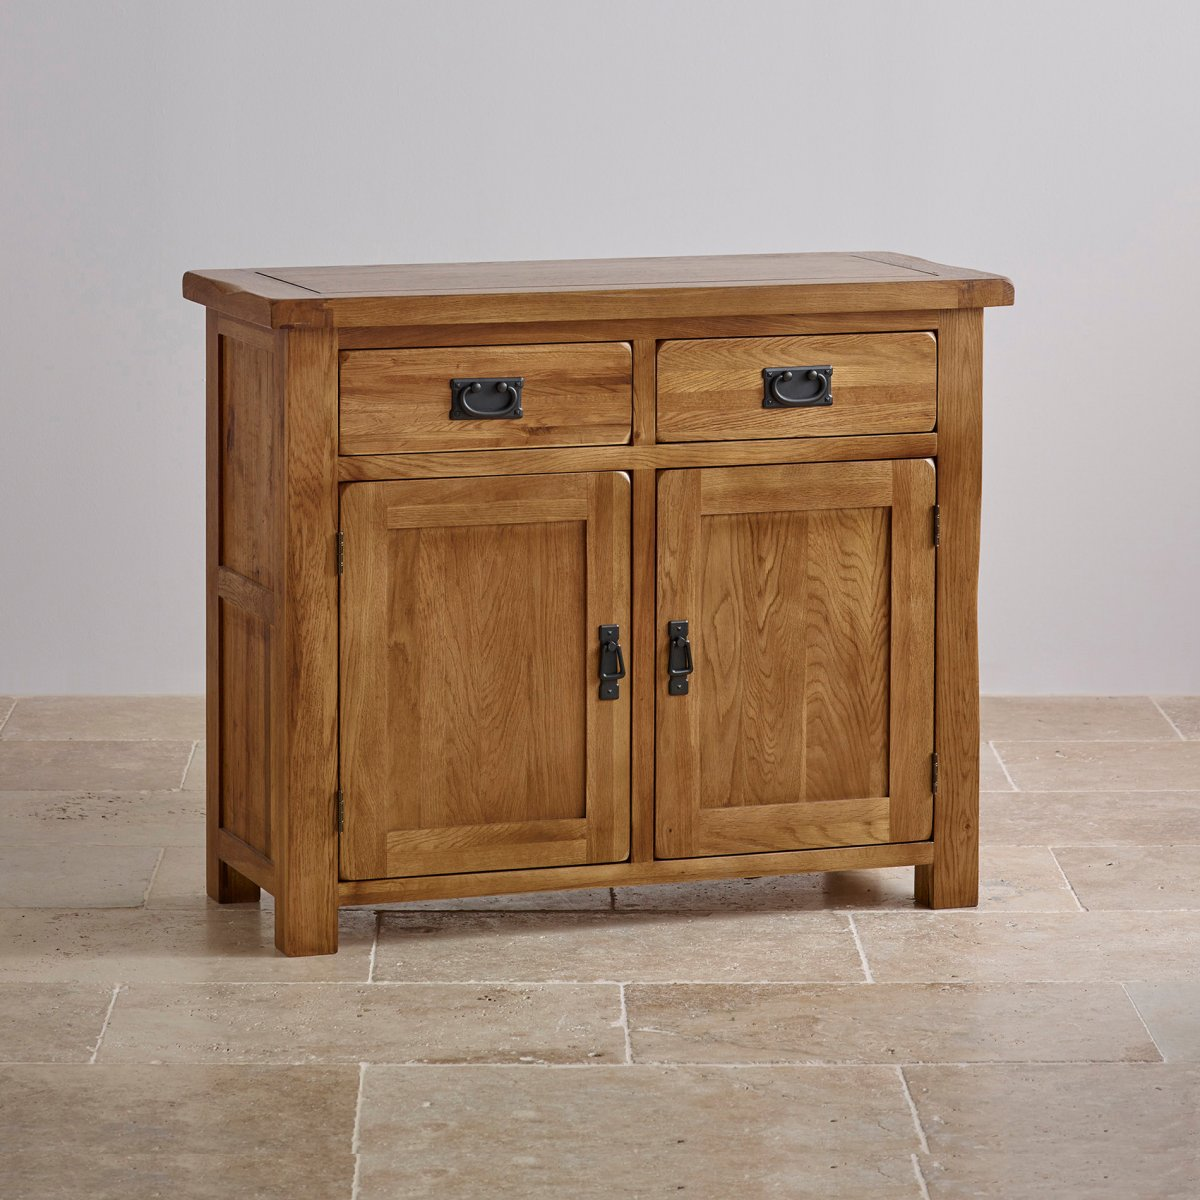 What could evoke the spirit of country living in your home more than a range of oak furniture. The solid wood and natural finish of one of Mother Nature's finest materials is the perfect way to bring a little warmth and natural beauty to your home.